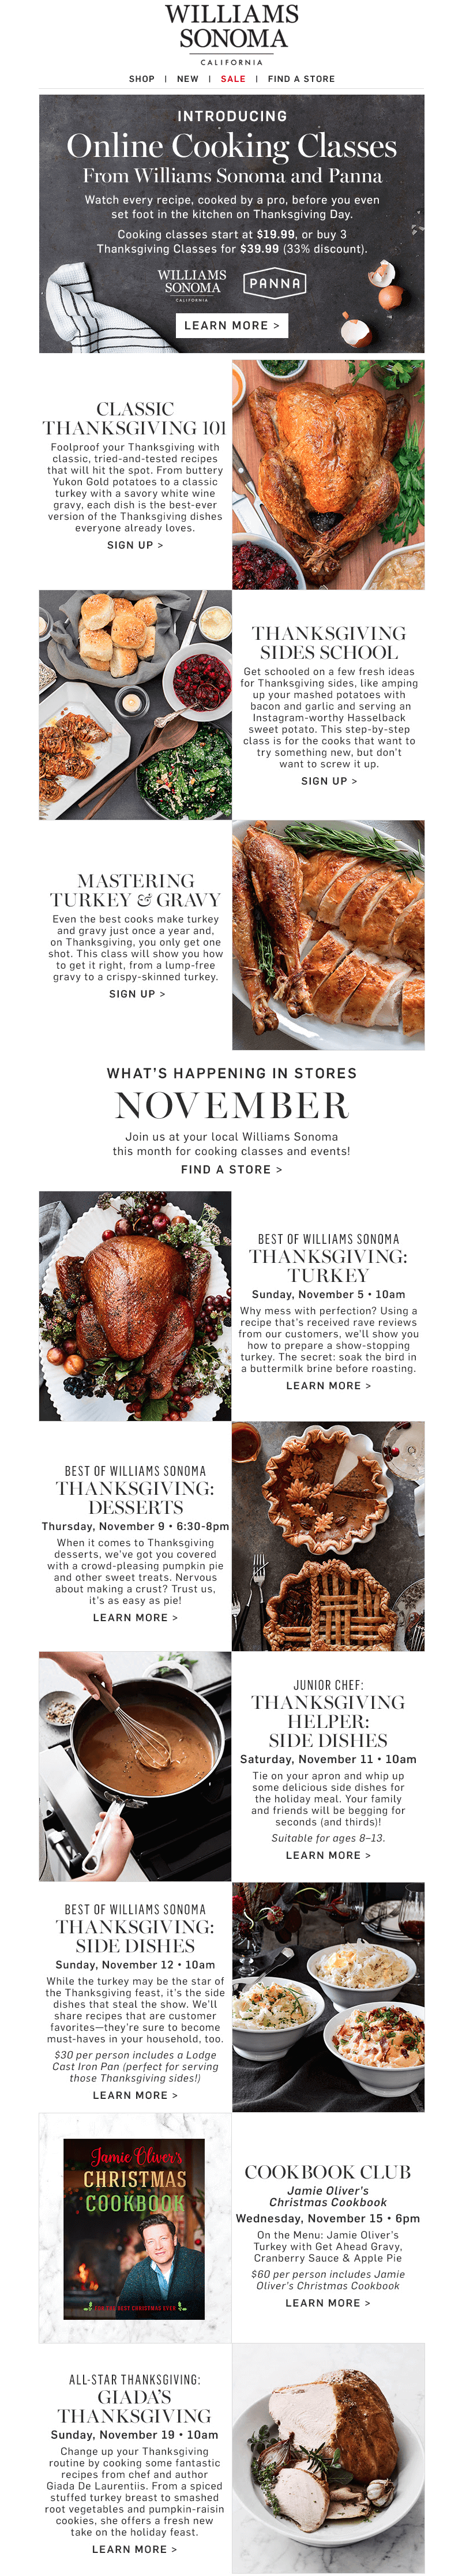 Williams Sonoma Thanksgiving email design